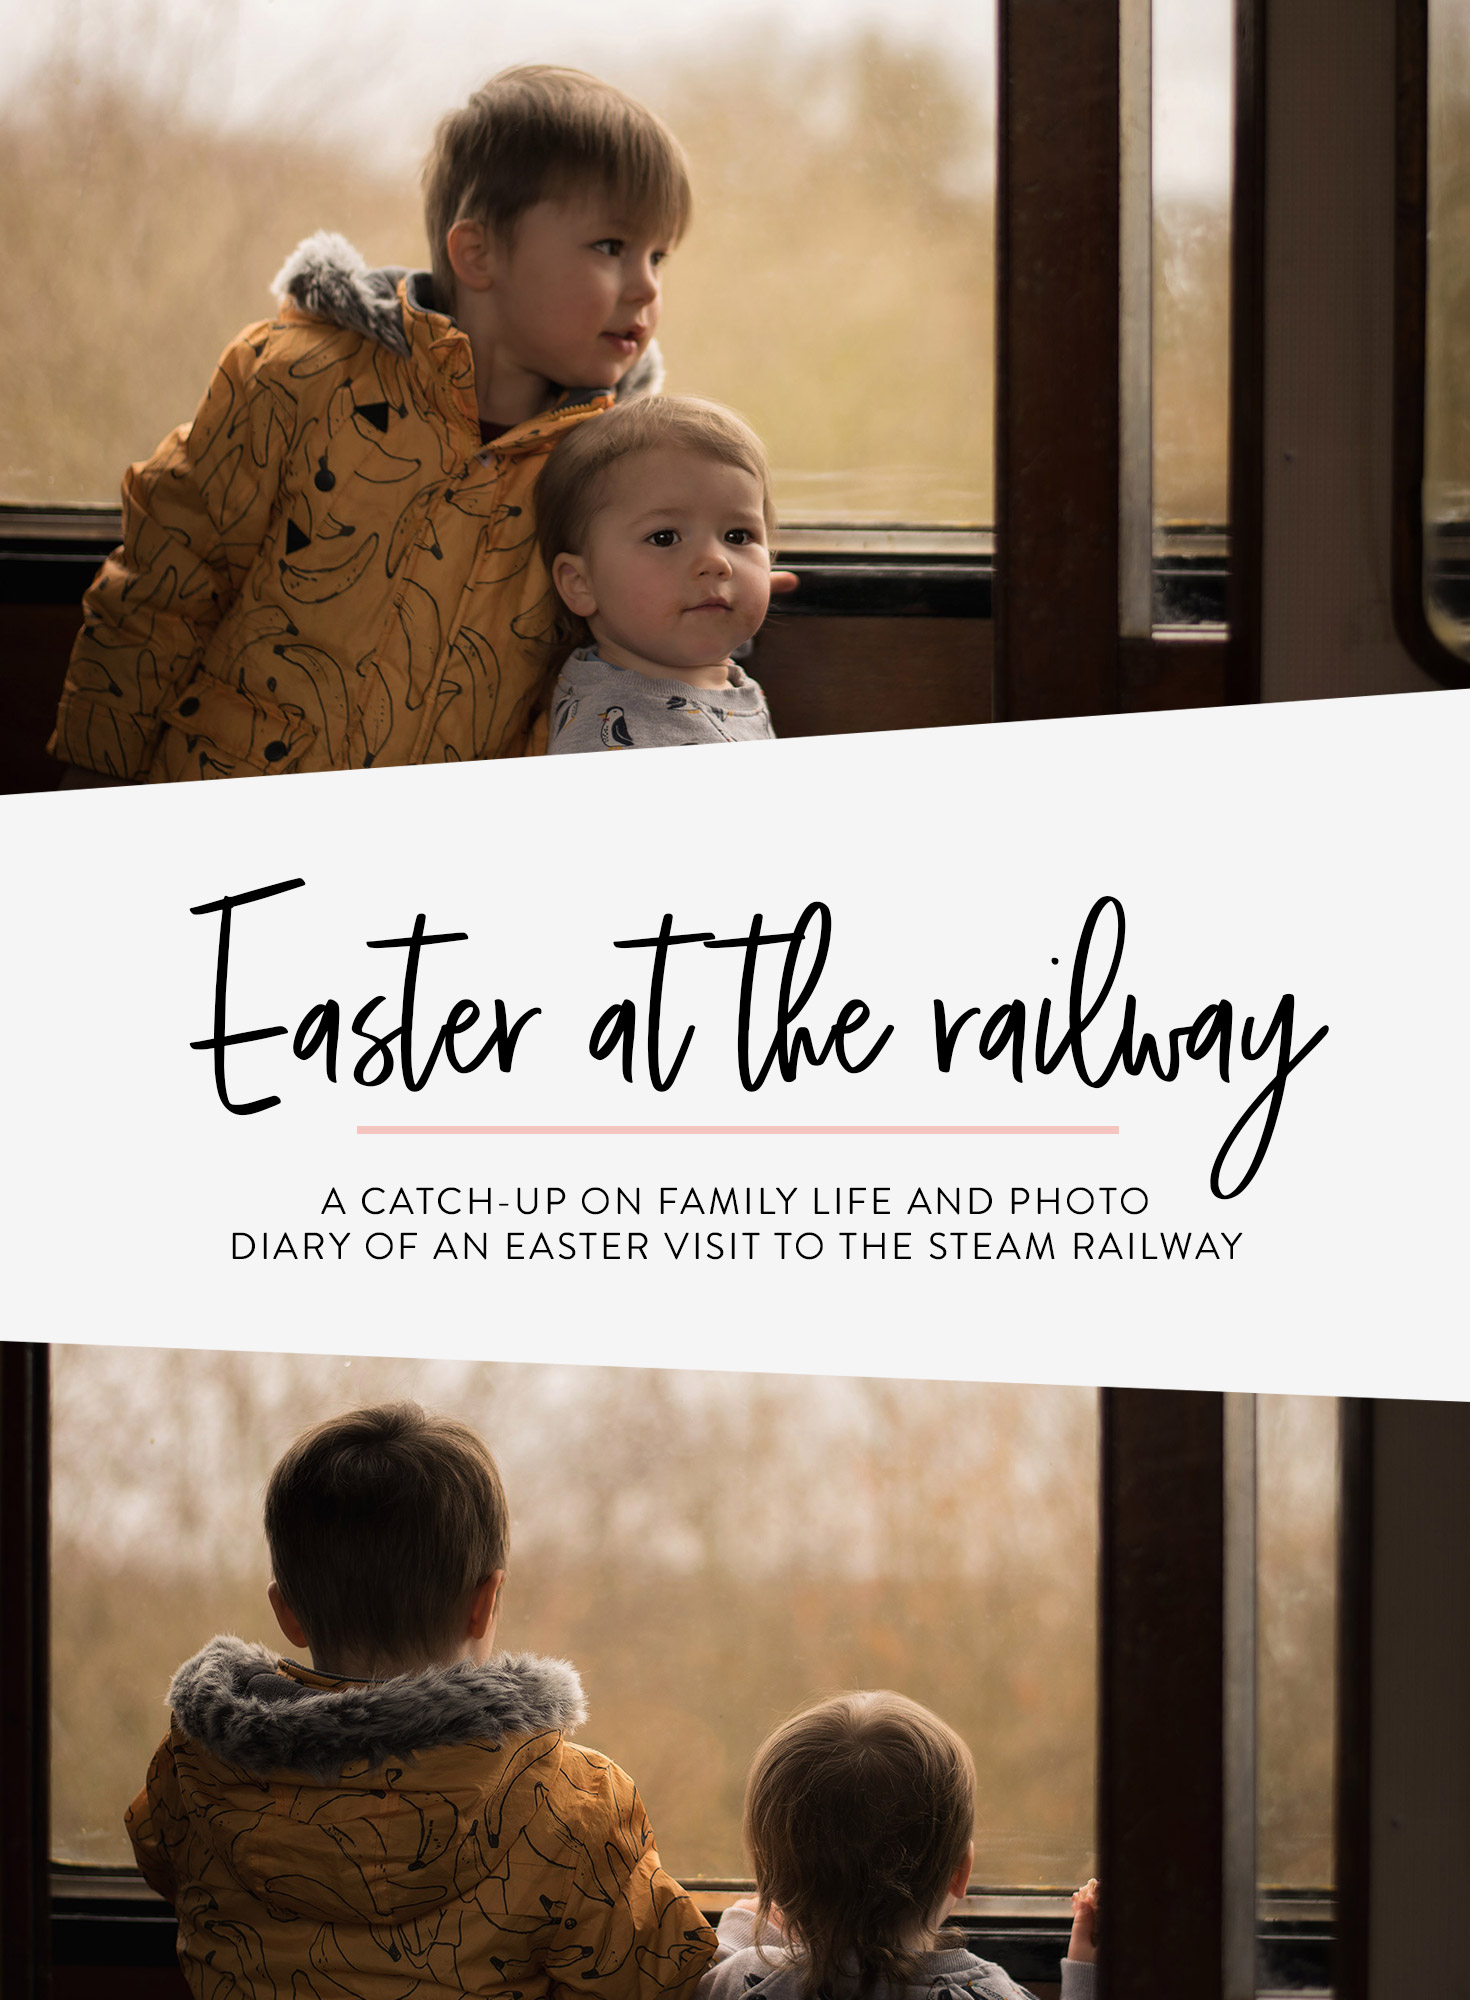 A catch-up on family life and a photo diary of our Easter visit to the Cricklade and Blunsdon steam railway, Wiltshire